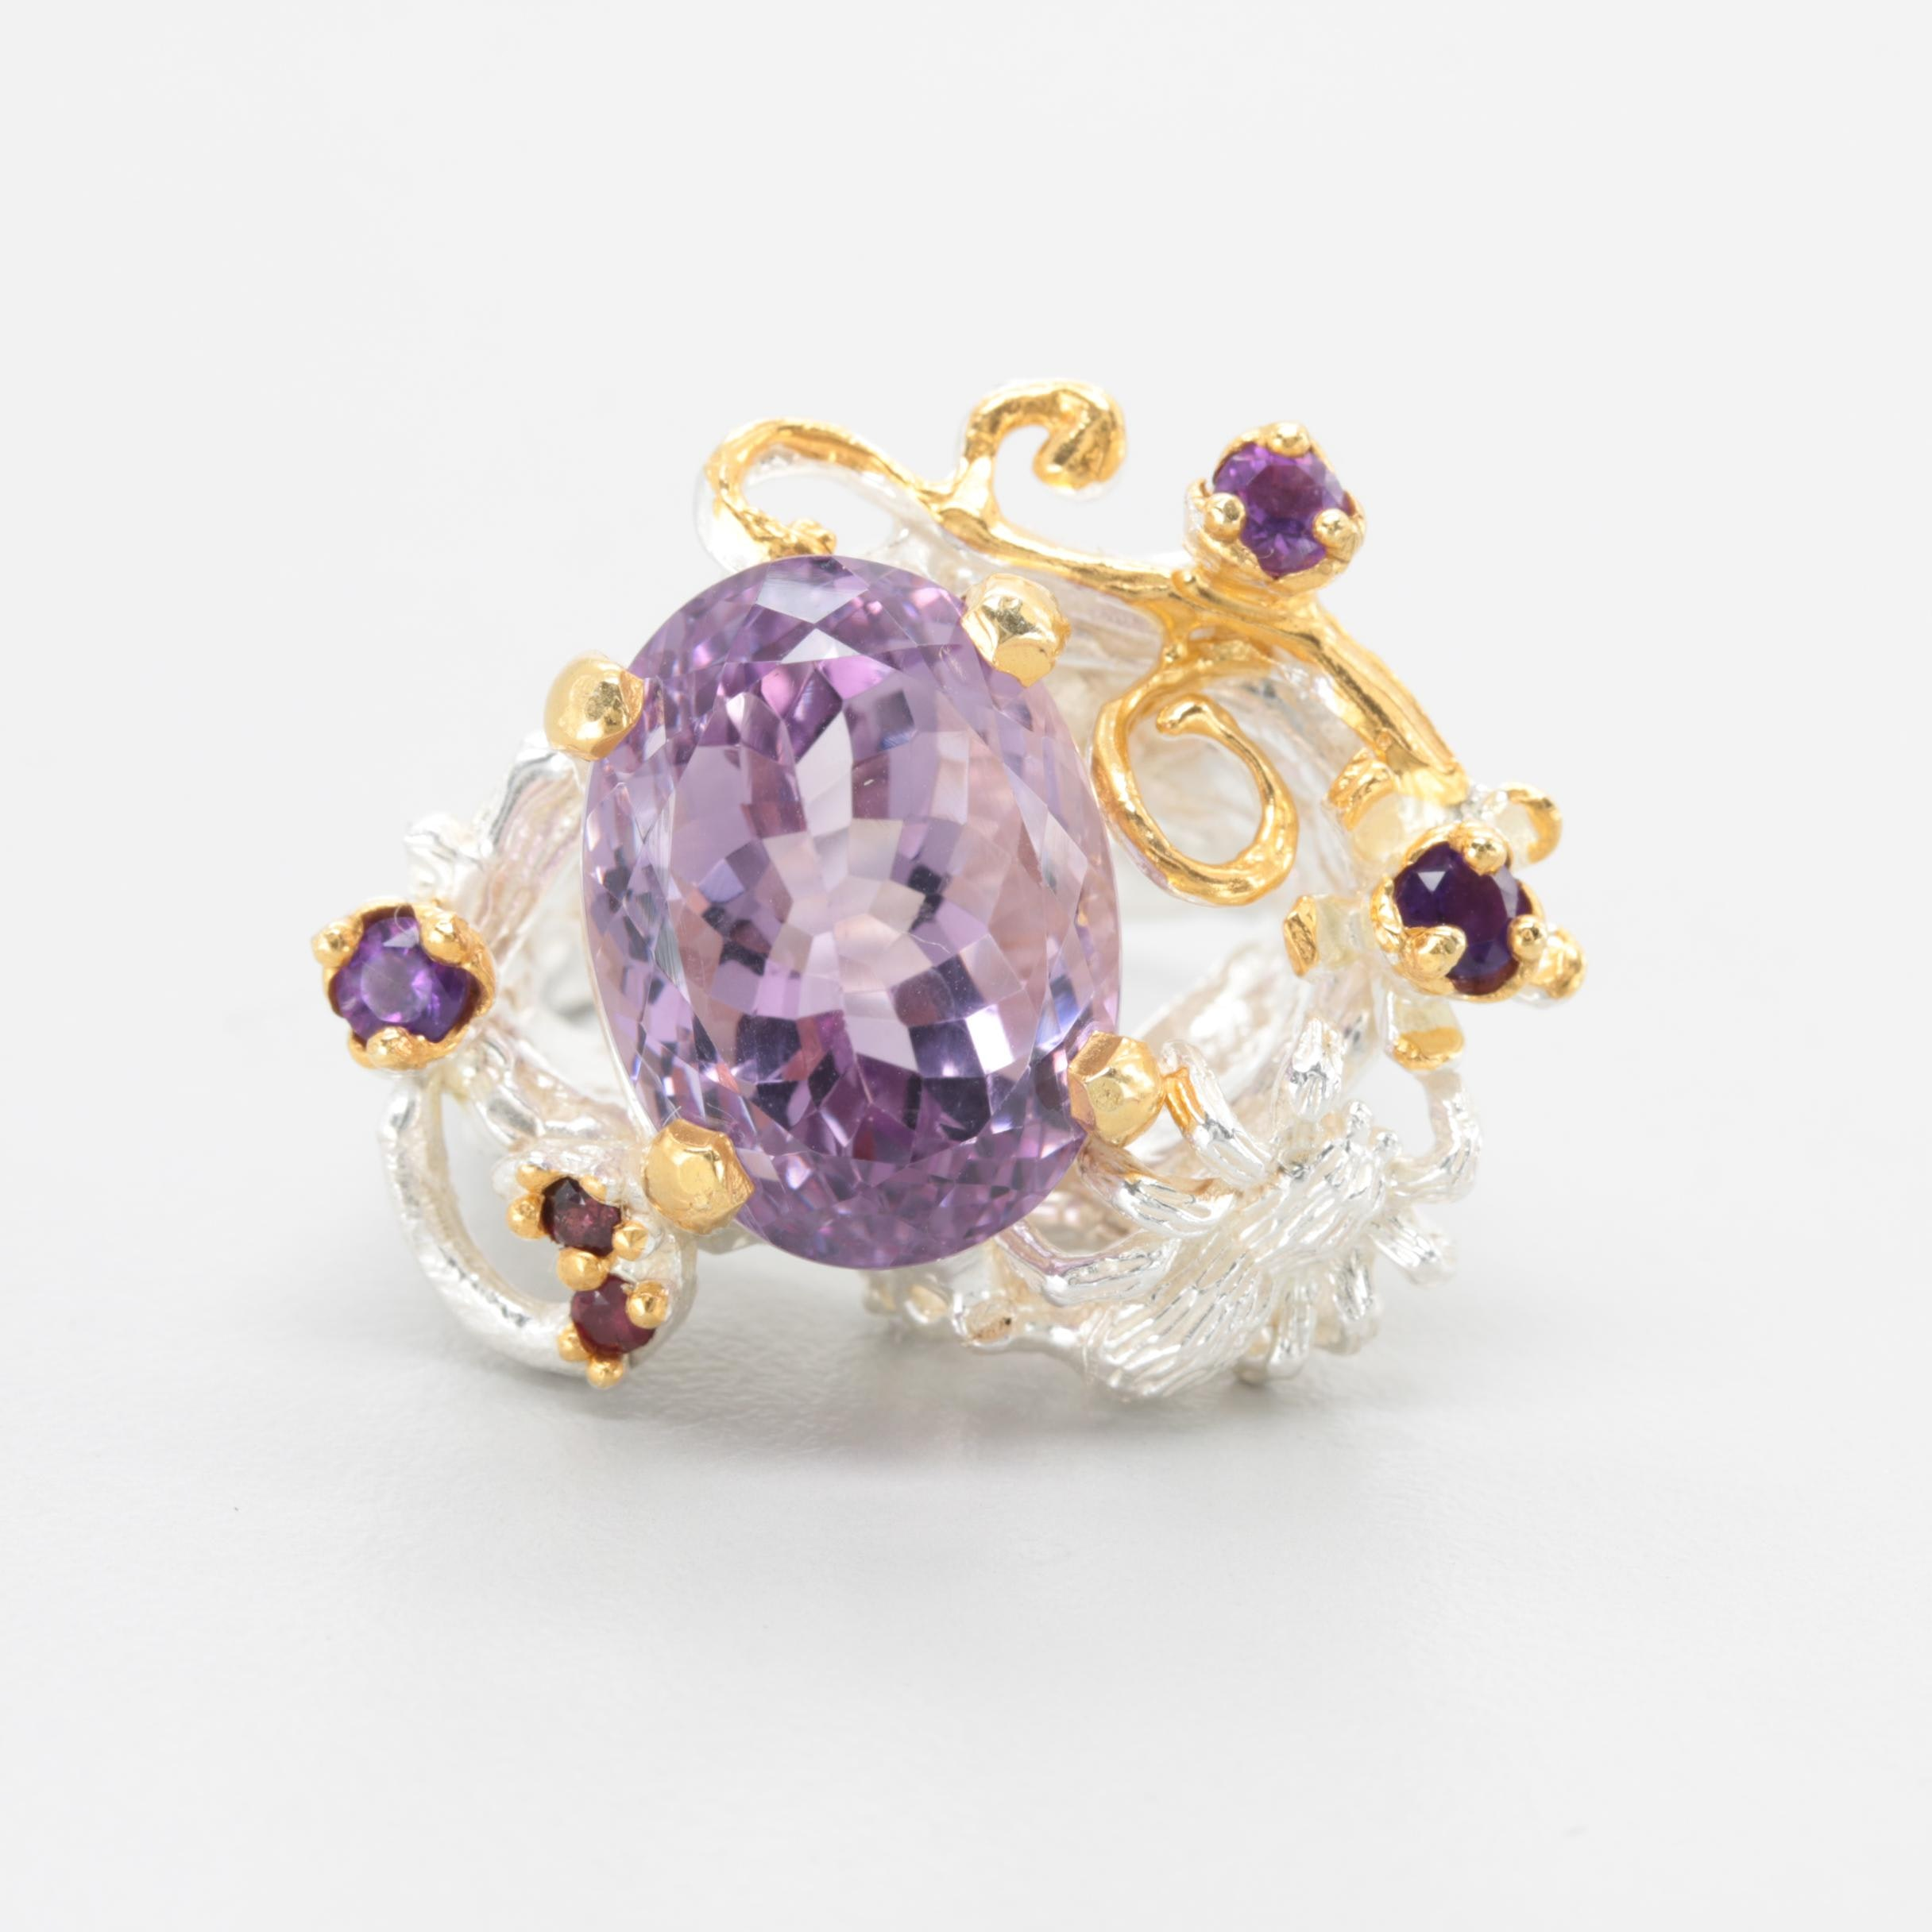 Sterling Silver 12.71 CT Amethyst and Rhodolite Garnet Ring with Gold Wash